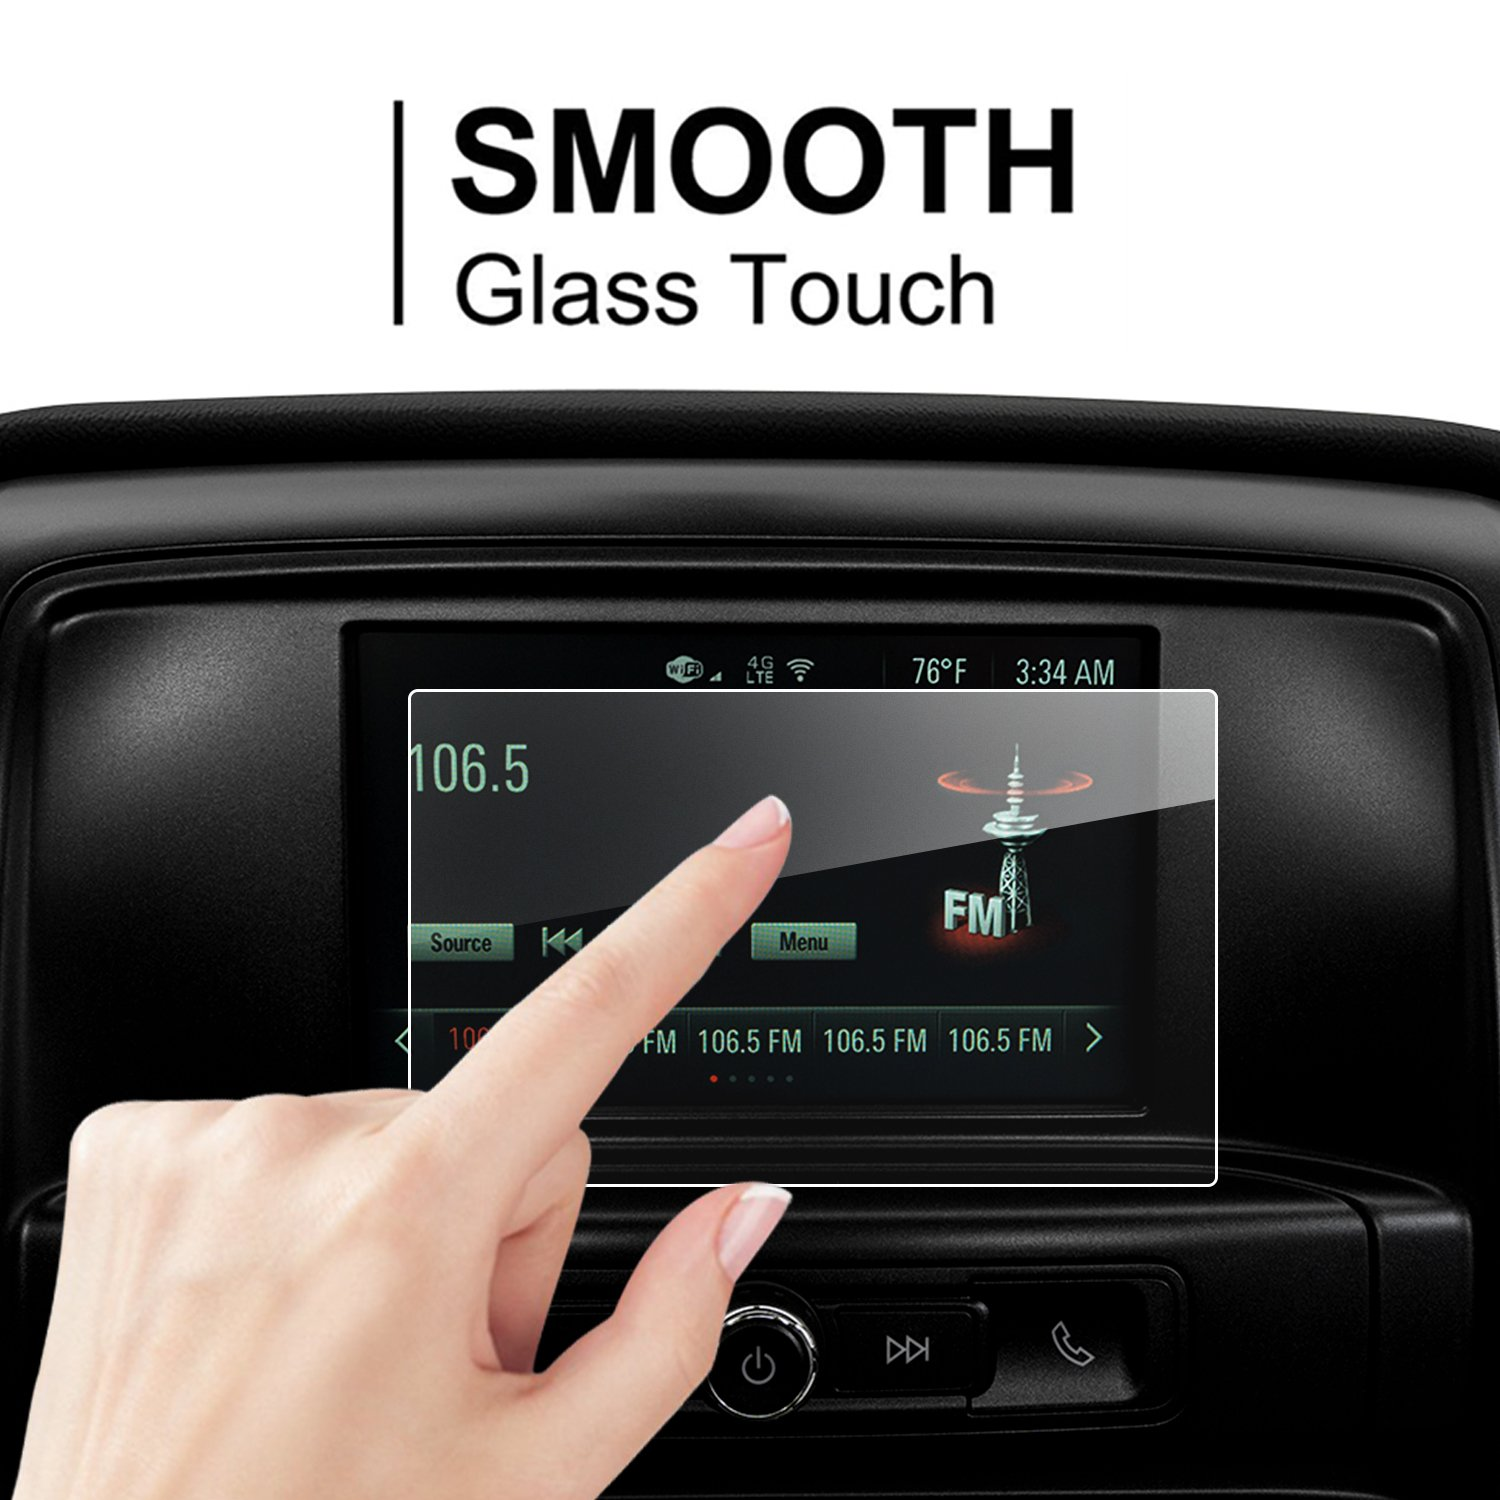 LFOTPP 2016-2018 GMC Sierra 1500 2500HD 3500HD 8 Inch IntelliLink Car Navigation Screen Protector, 9H LiFan 201617GMCSierra 1500 25003500HD8 Inch 8-Inch Tempered Glass Center Touch Screen Protector Anti Scratch High Clarity